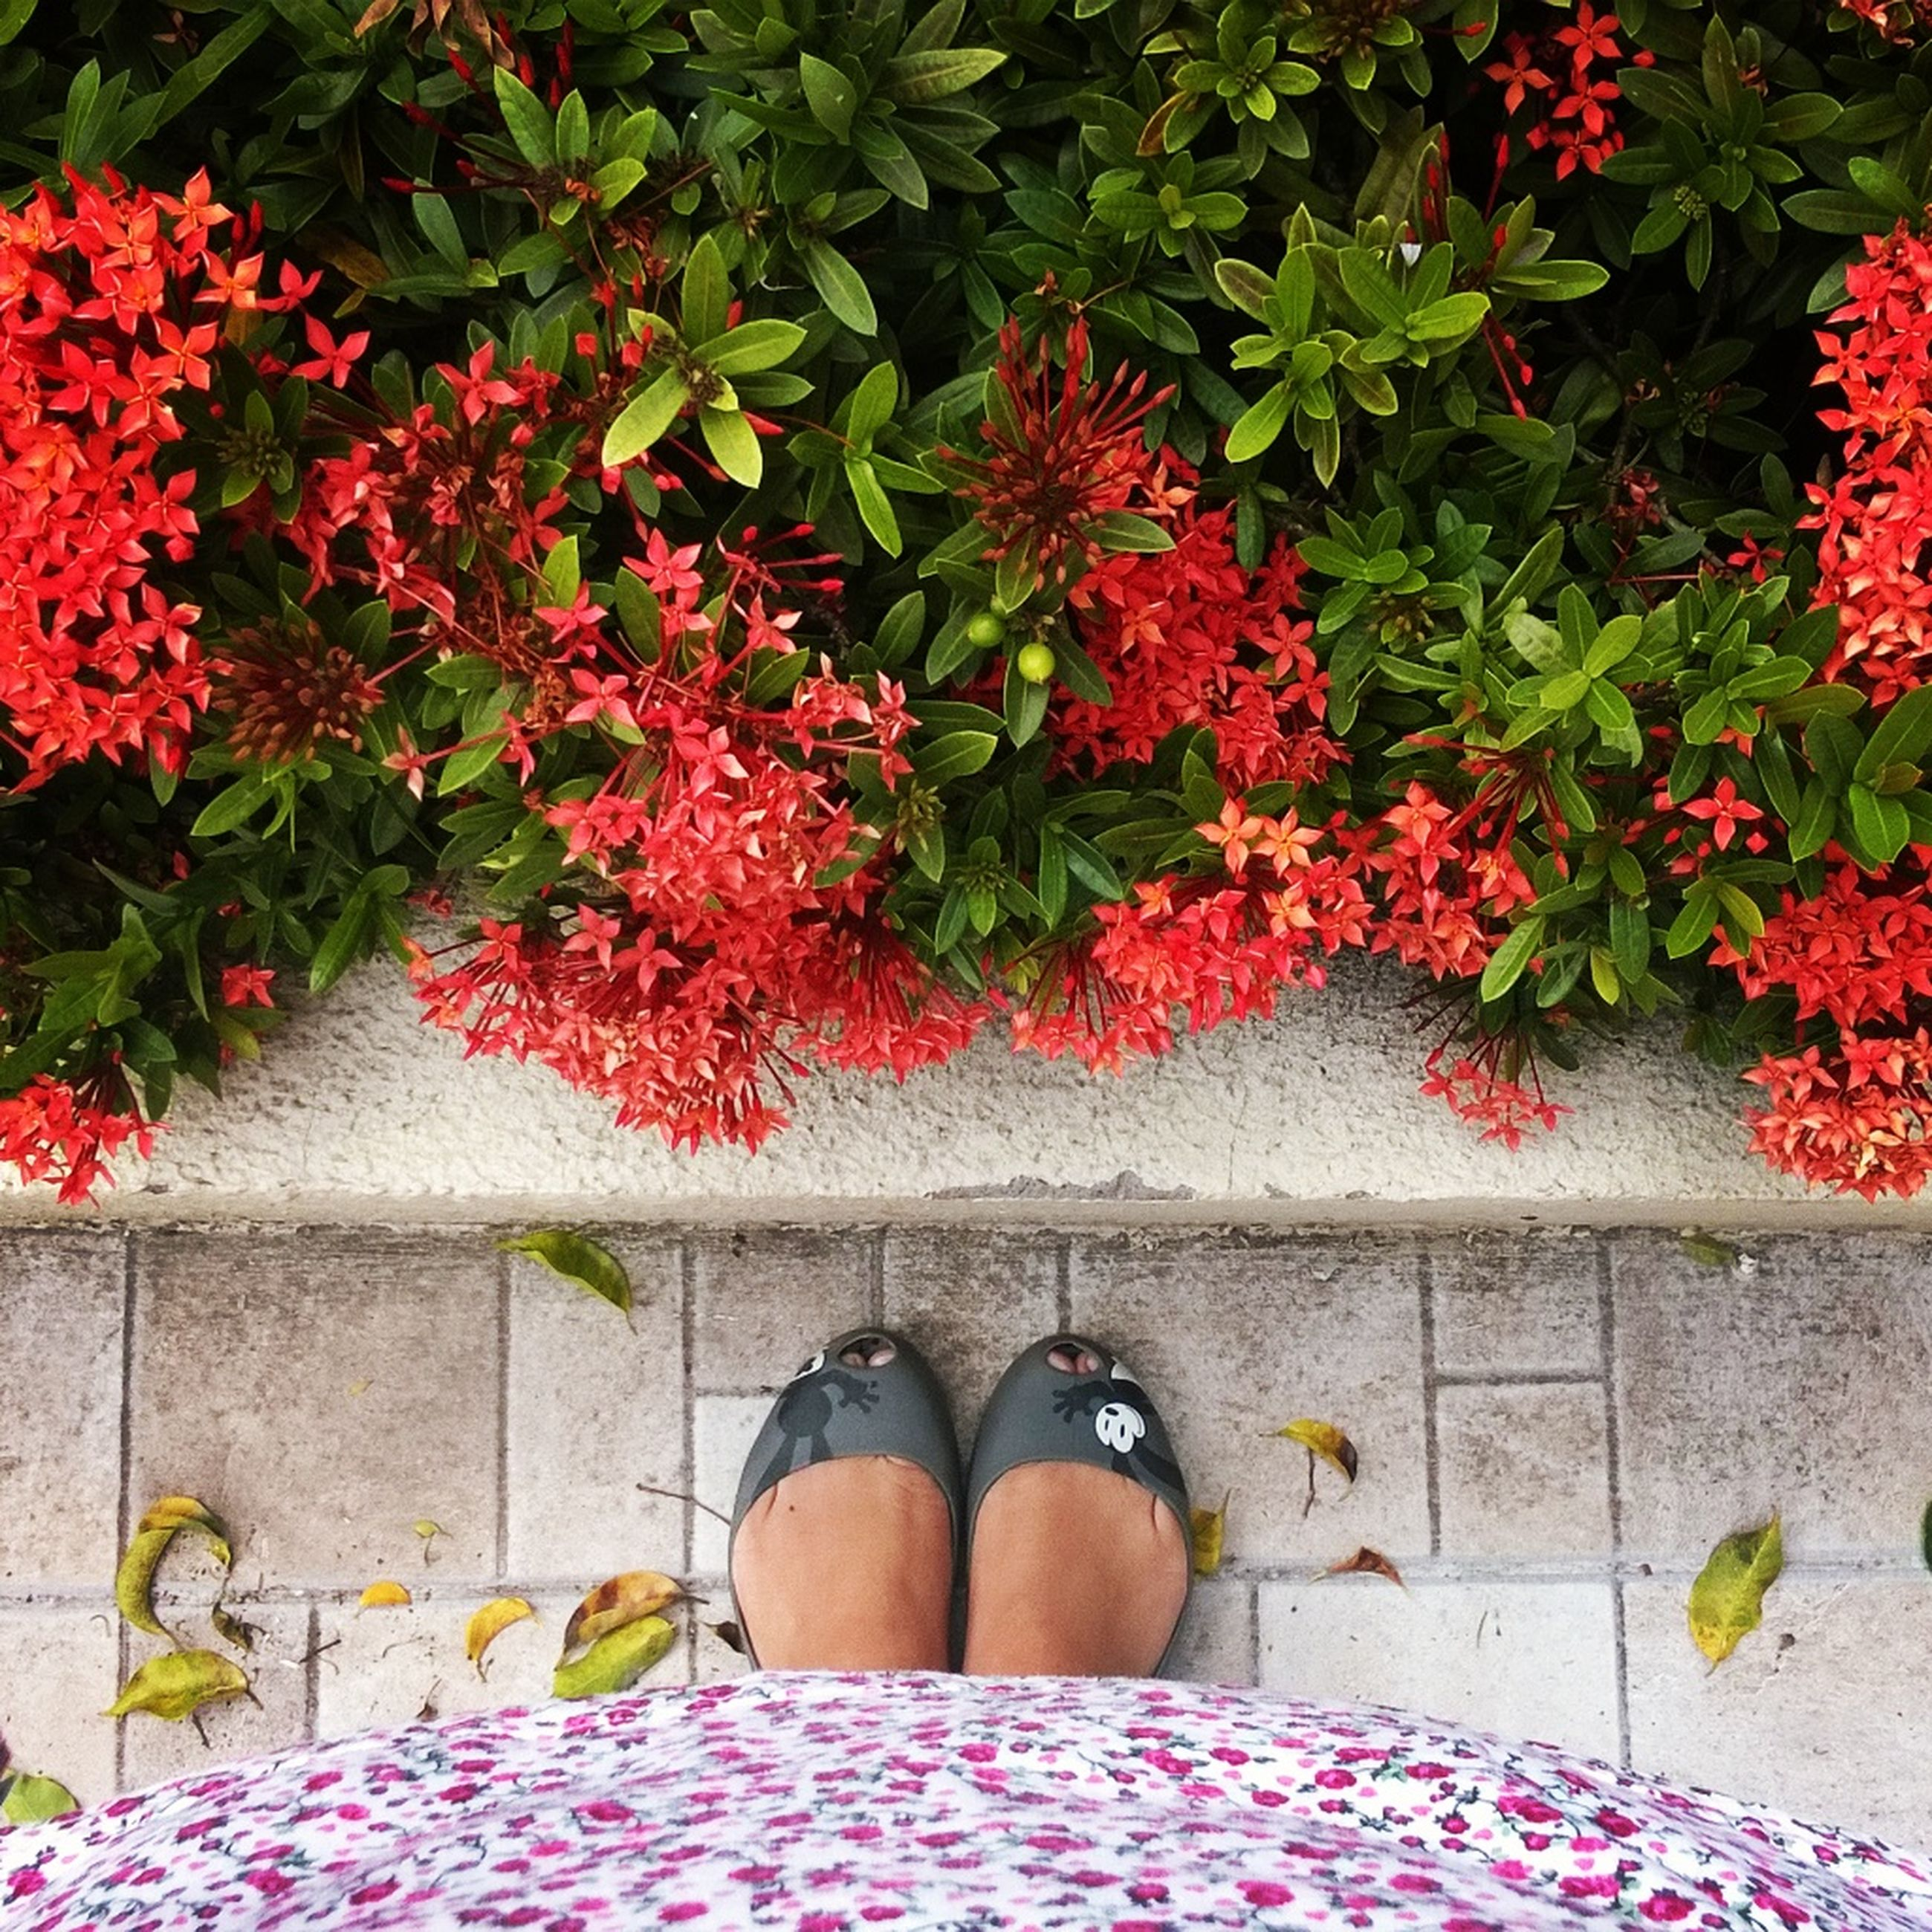 flower, red, plant, low section, growth, freshness, pink color, potted plant, standing, nature, fragility, person, leaf, beauty in nature, high angle view, outdoors, shoe, day